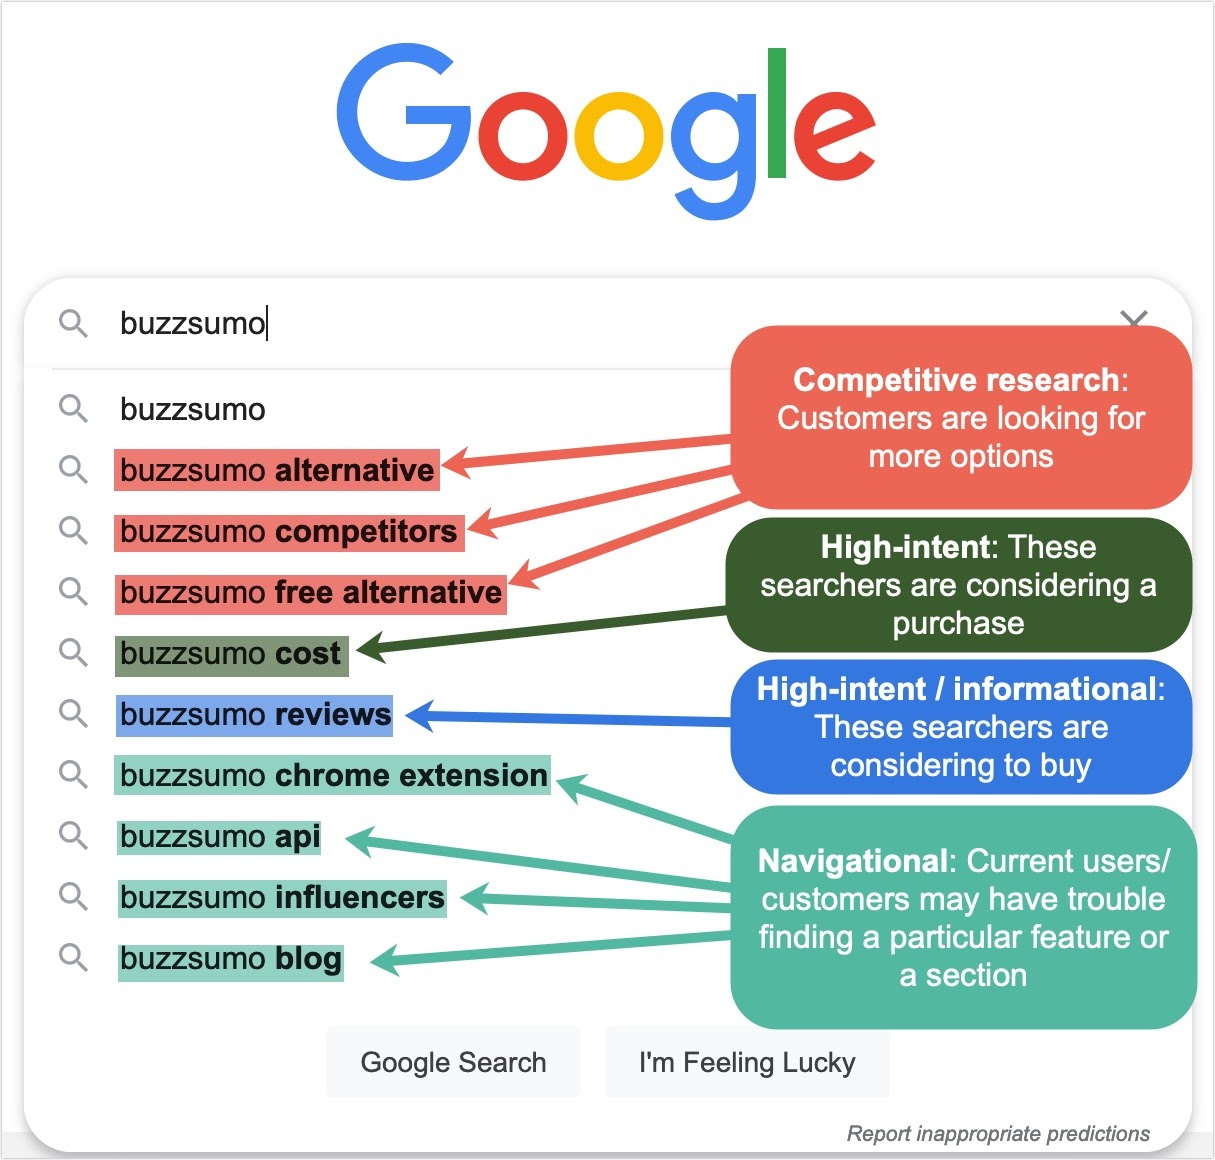 Screenshot of a Google search showing four types of branded search terms: competitive research, high-intent, high-intent/informational, and navigational.